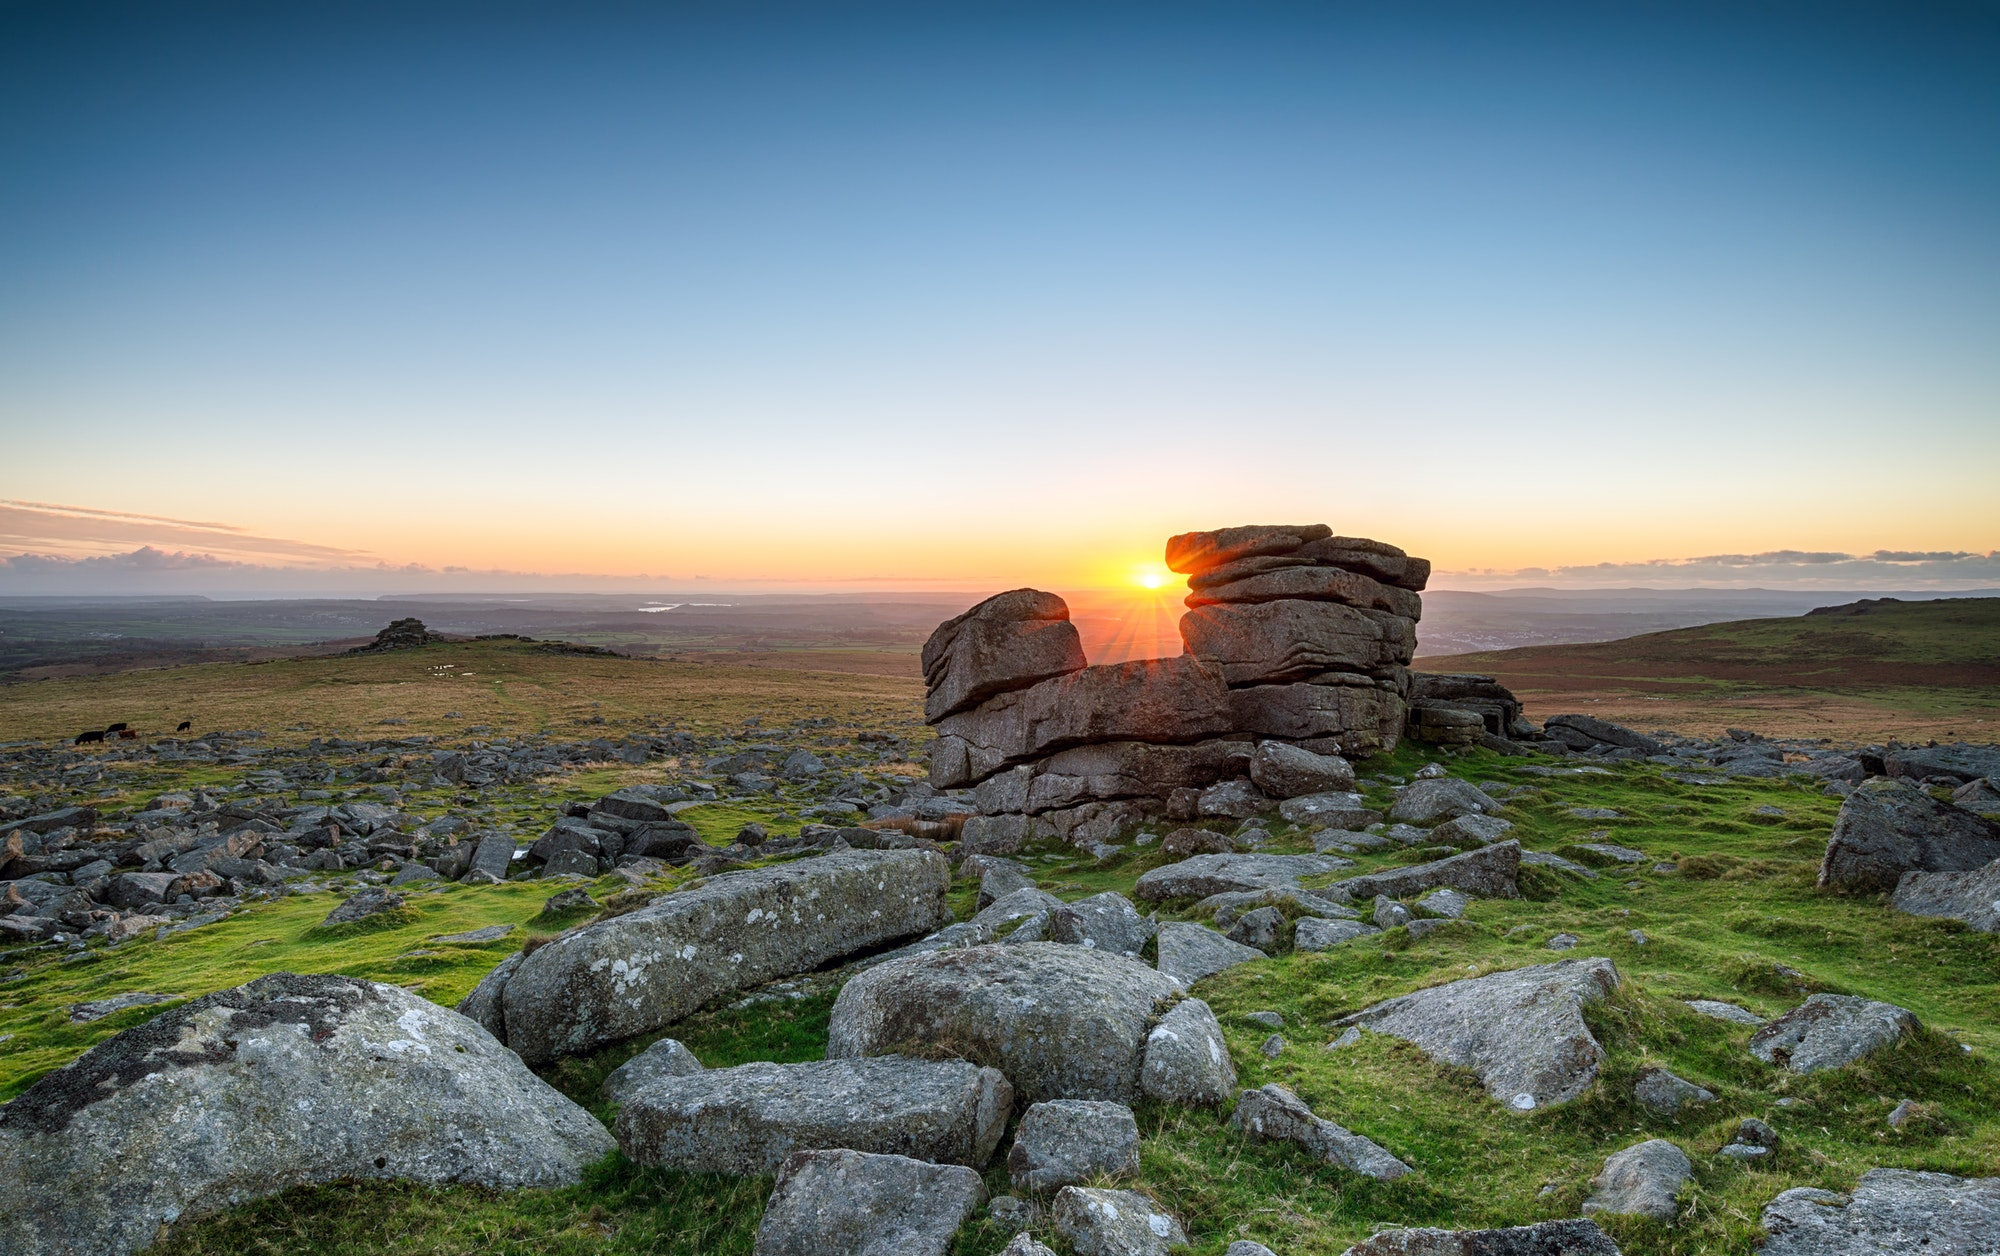 Sunset at Staple Tor